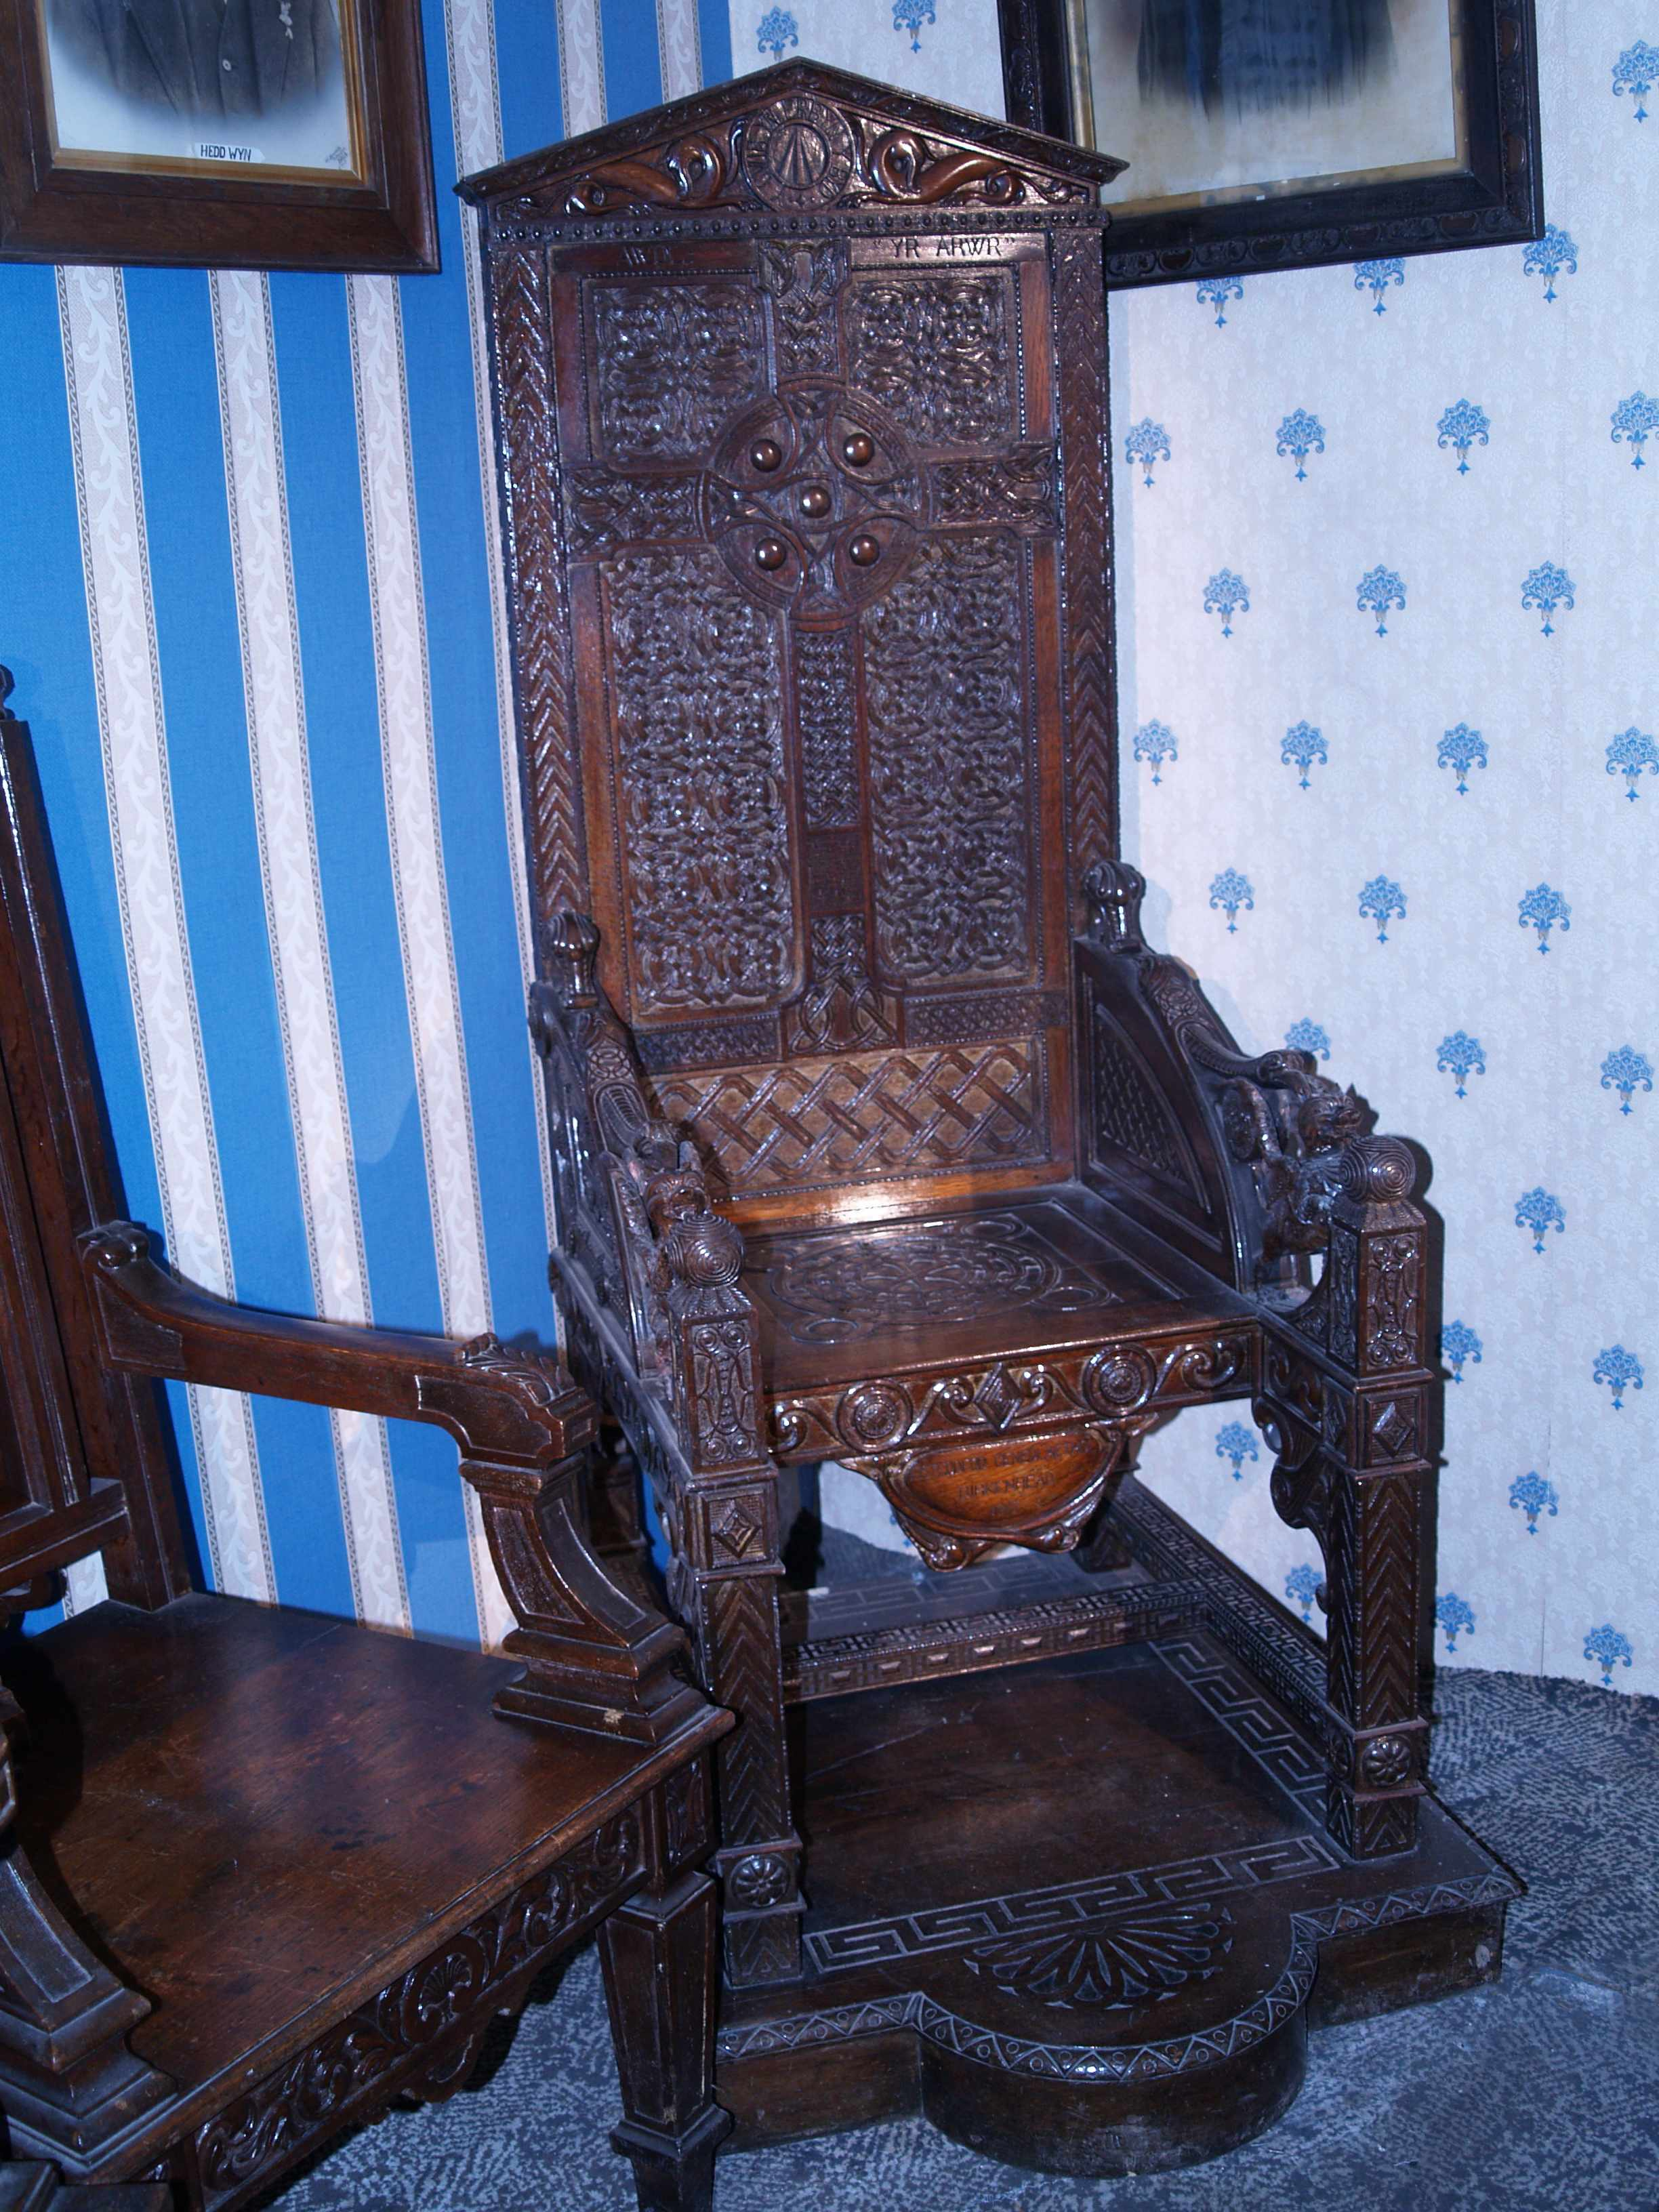 The Birkenhead National Eisteddfod Black Chair, 1917